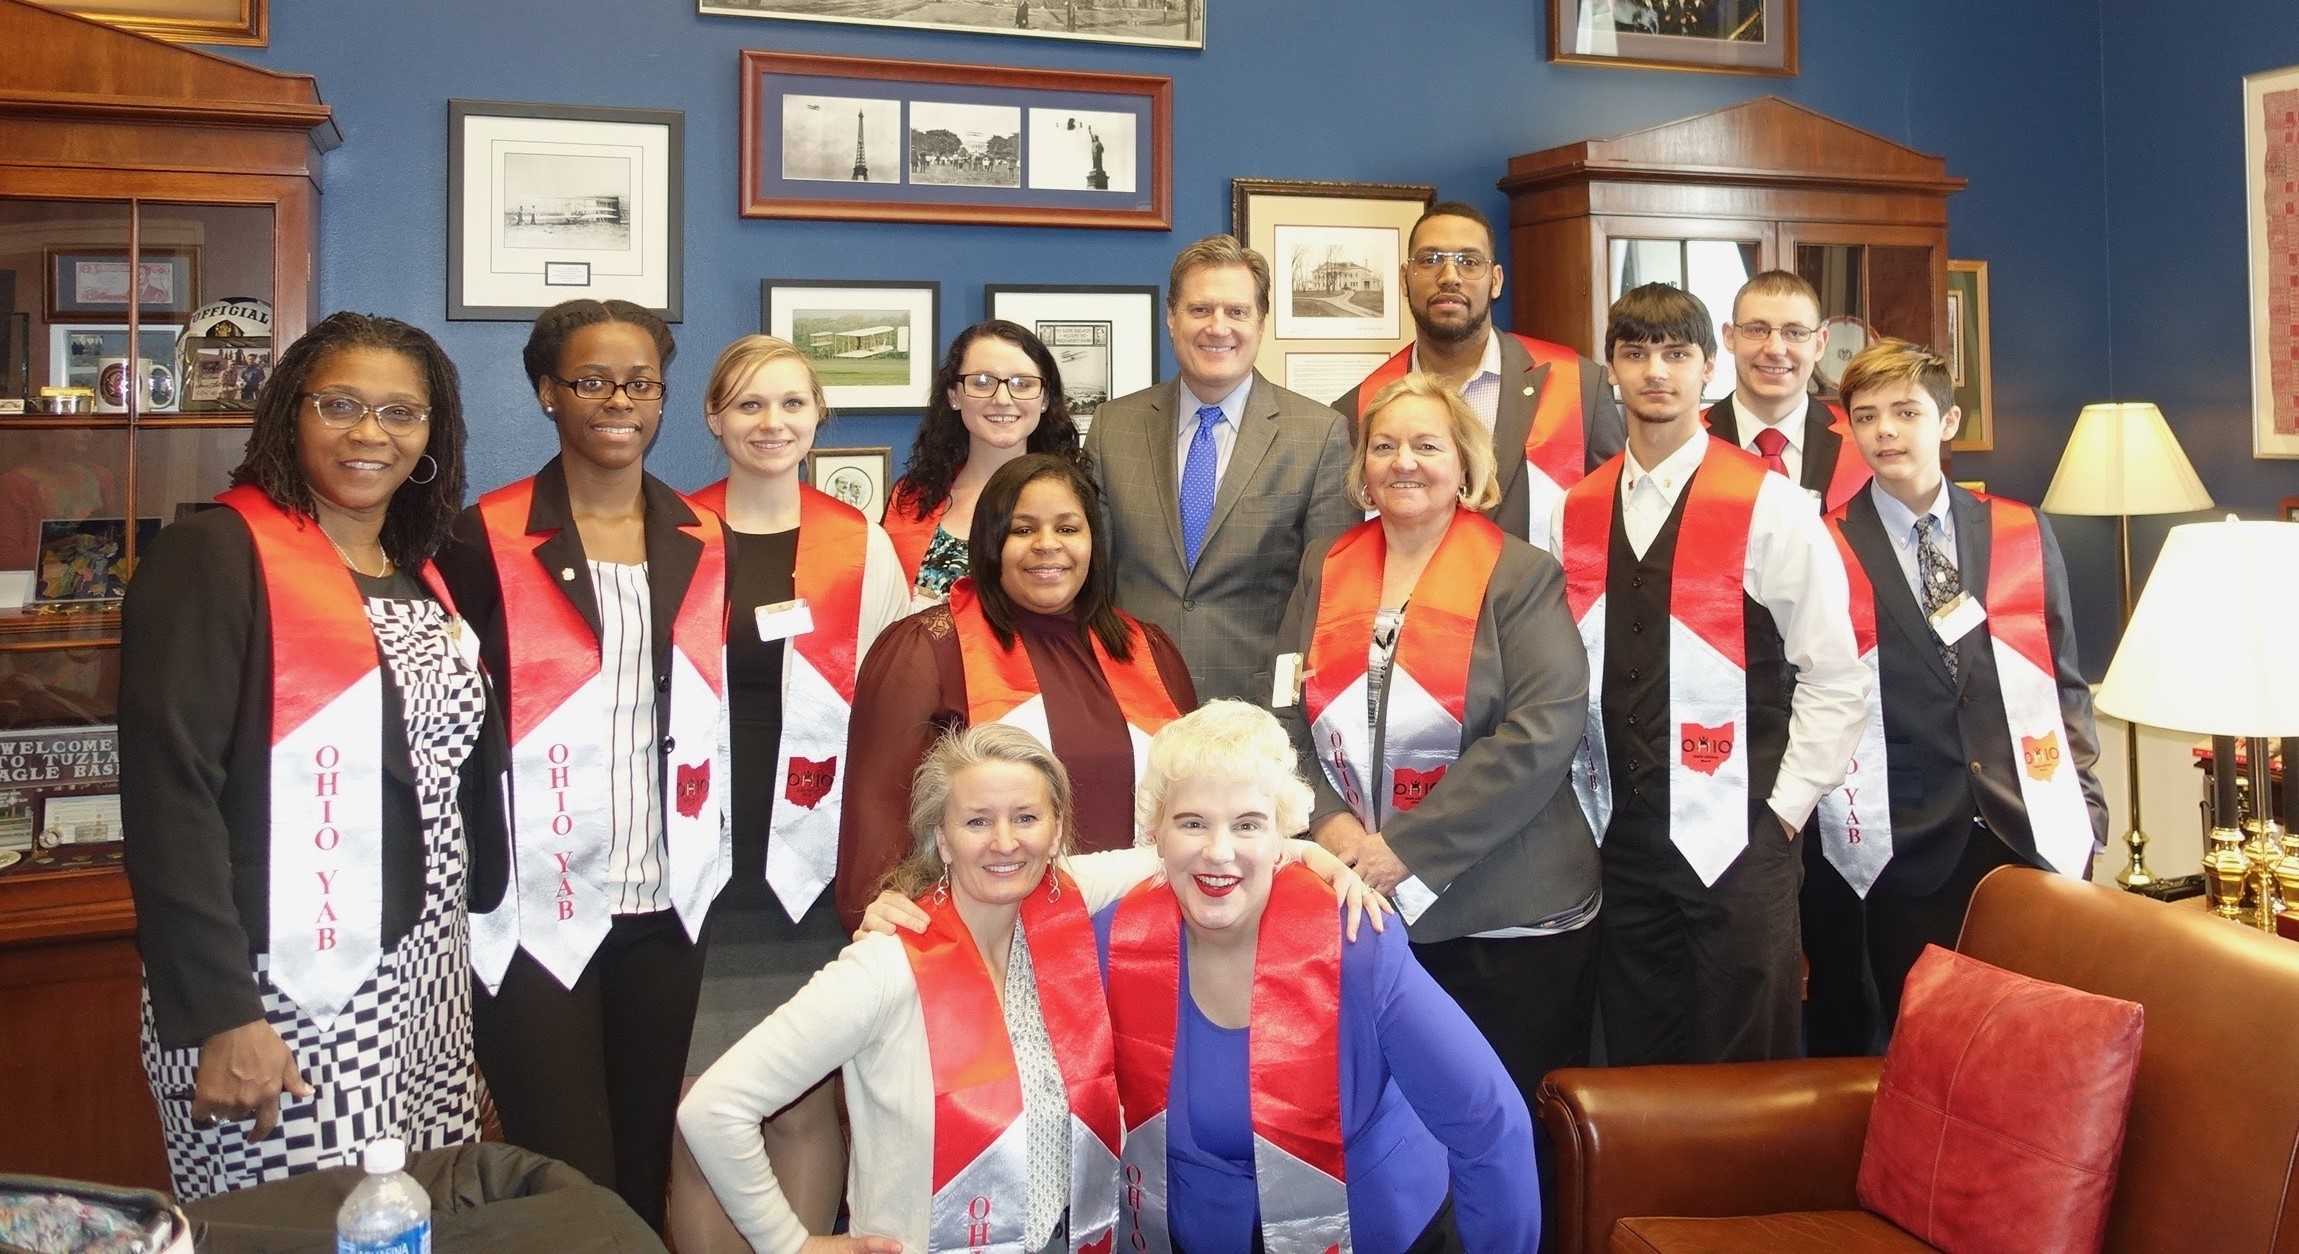 June 2016 Members of the Ohio Youth Advisory Board meet with Rep. Mike Turner to design FSHO/FYI